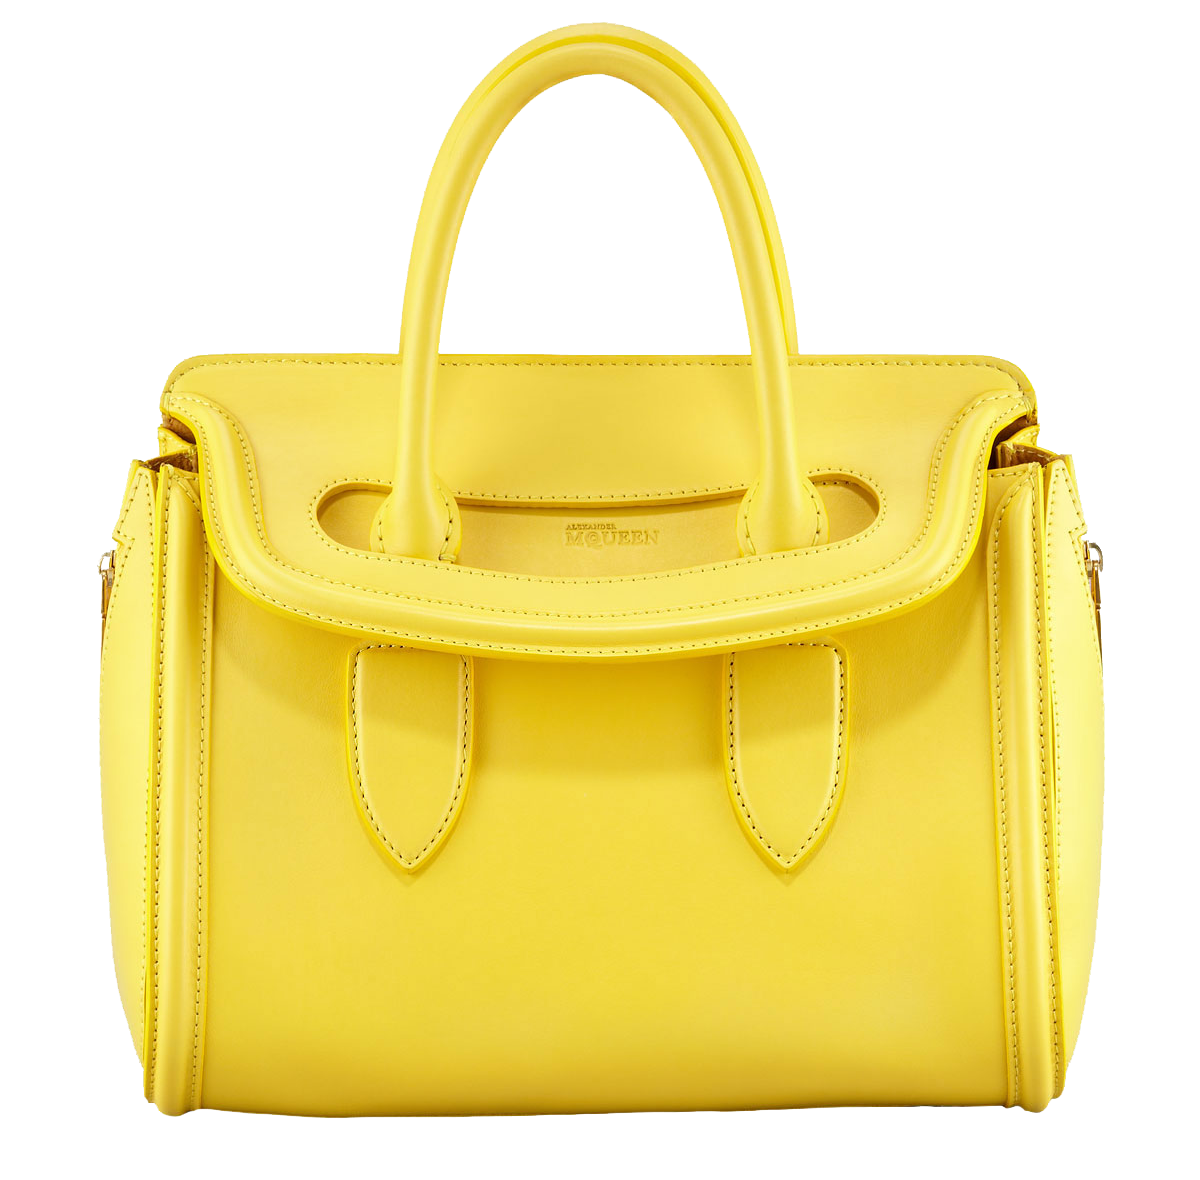 Alexander McQueen Small Heroine Satchel Bag Bright Yellow